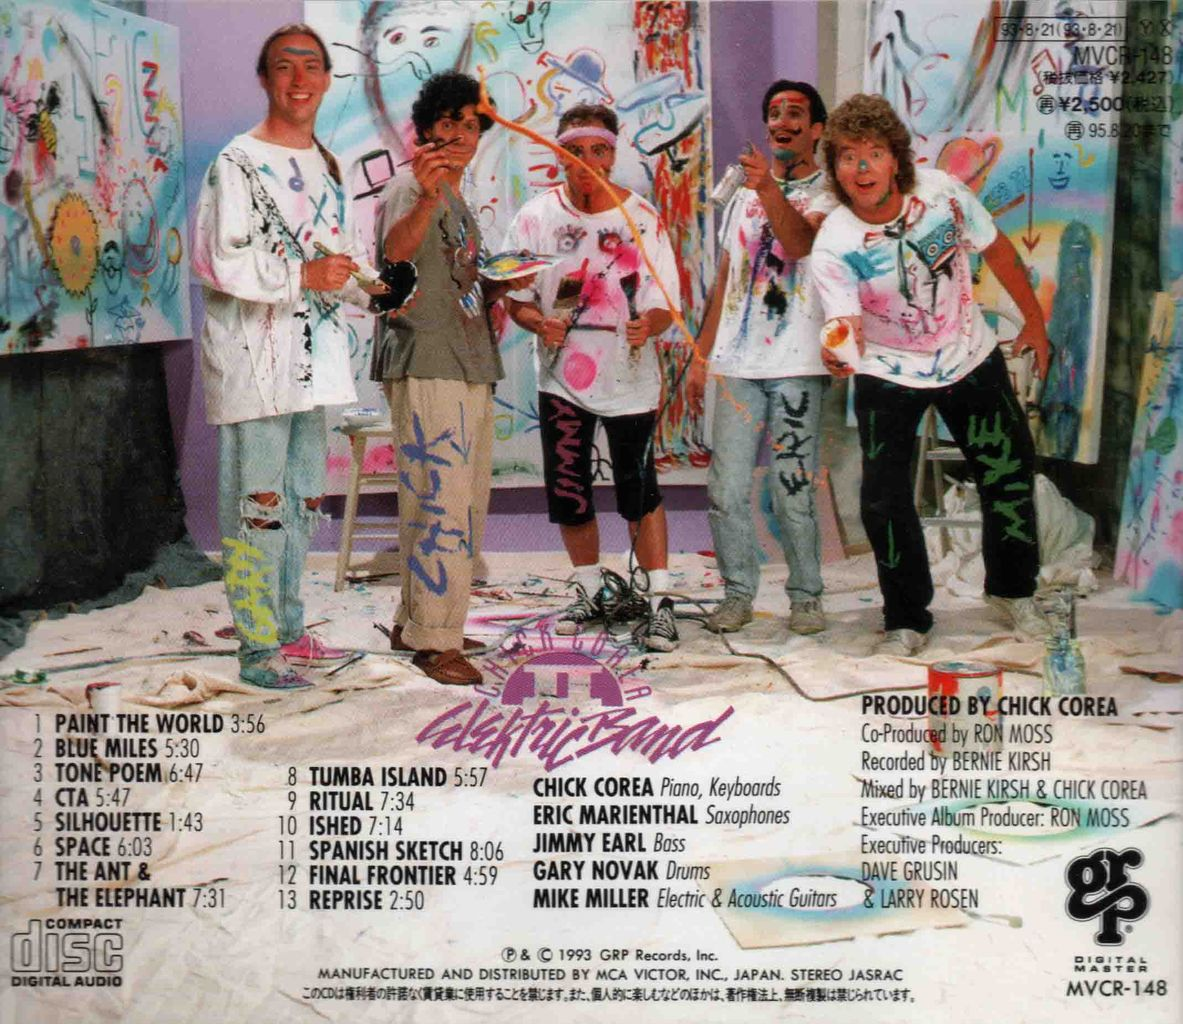 PAINT THE WORLD-2